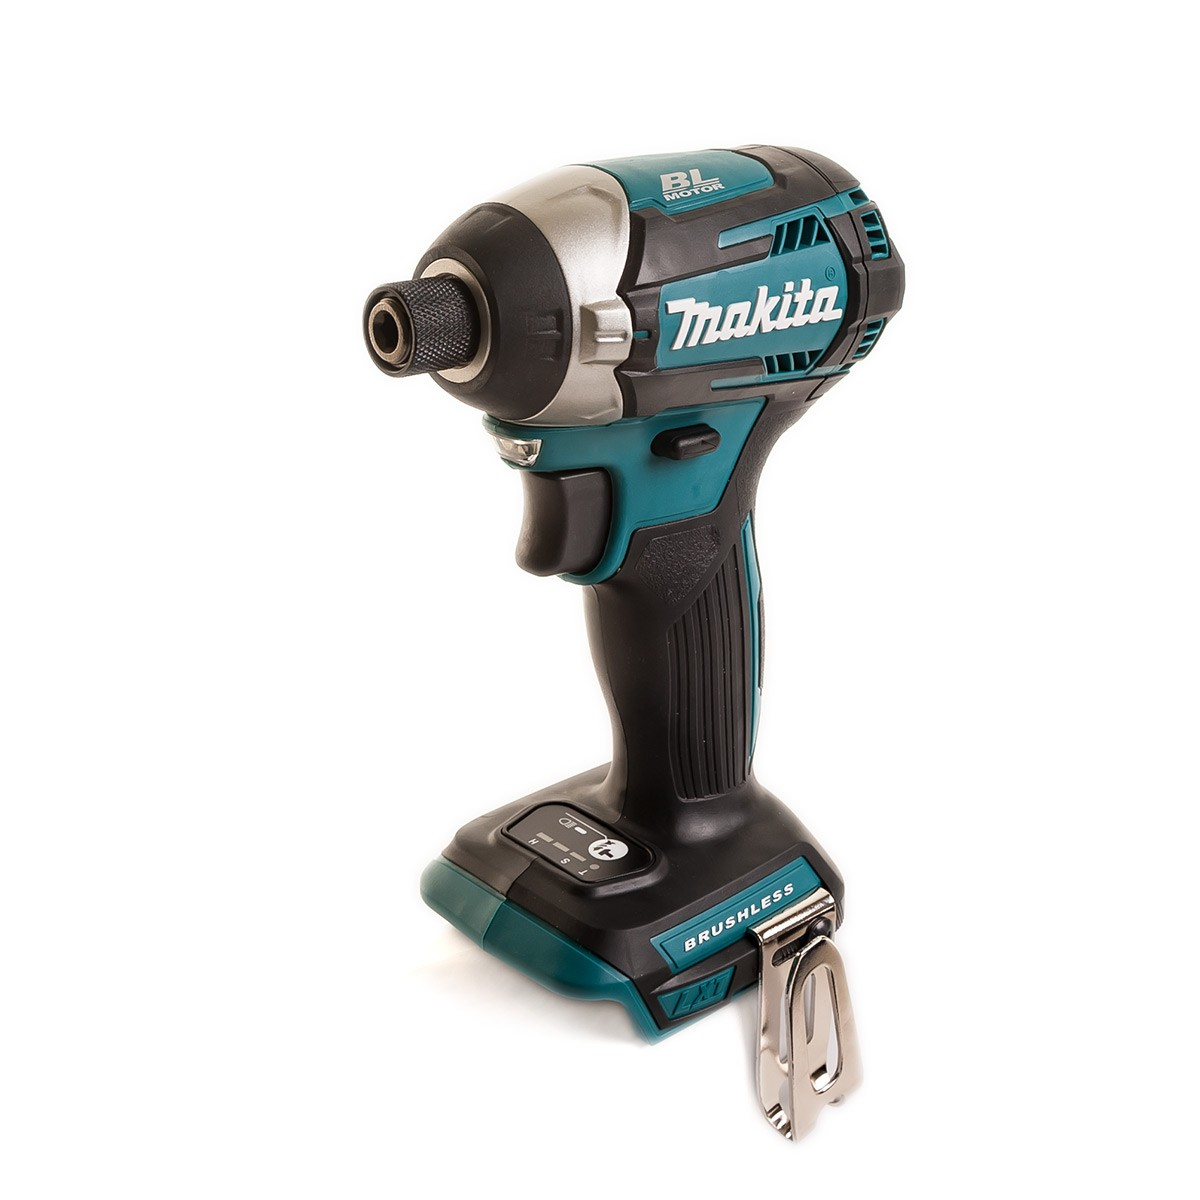 Makita DTD154 18V Brushless LXT Impact Driver (Assist Mode) - Body Only